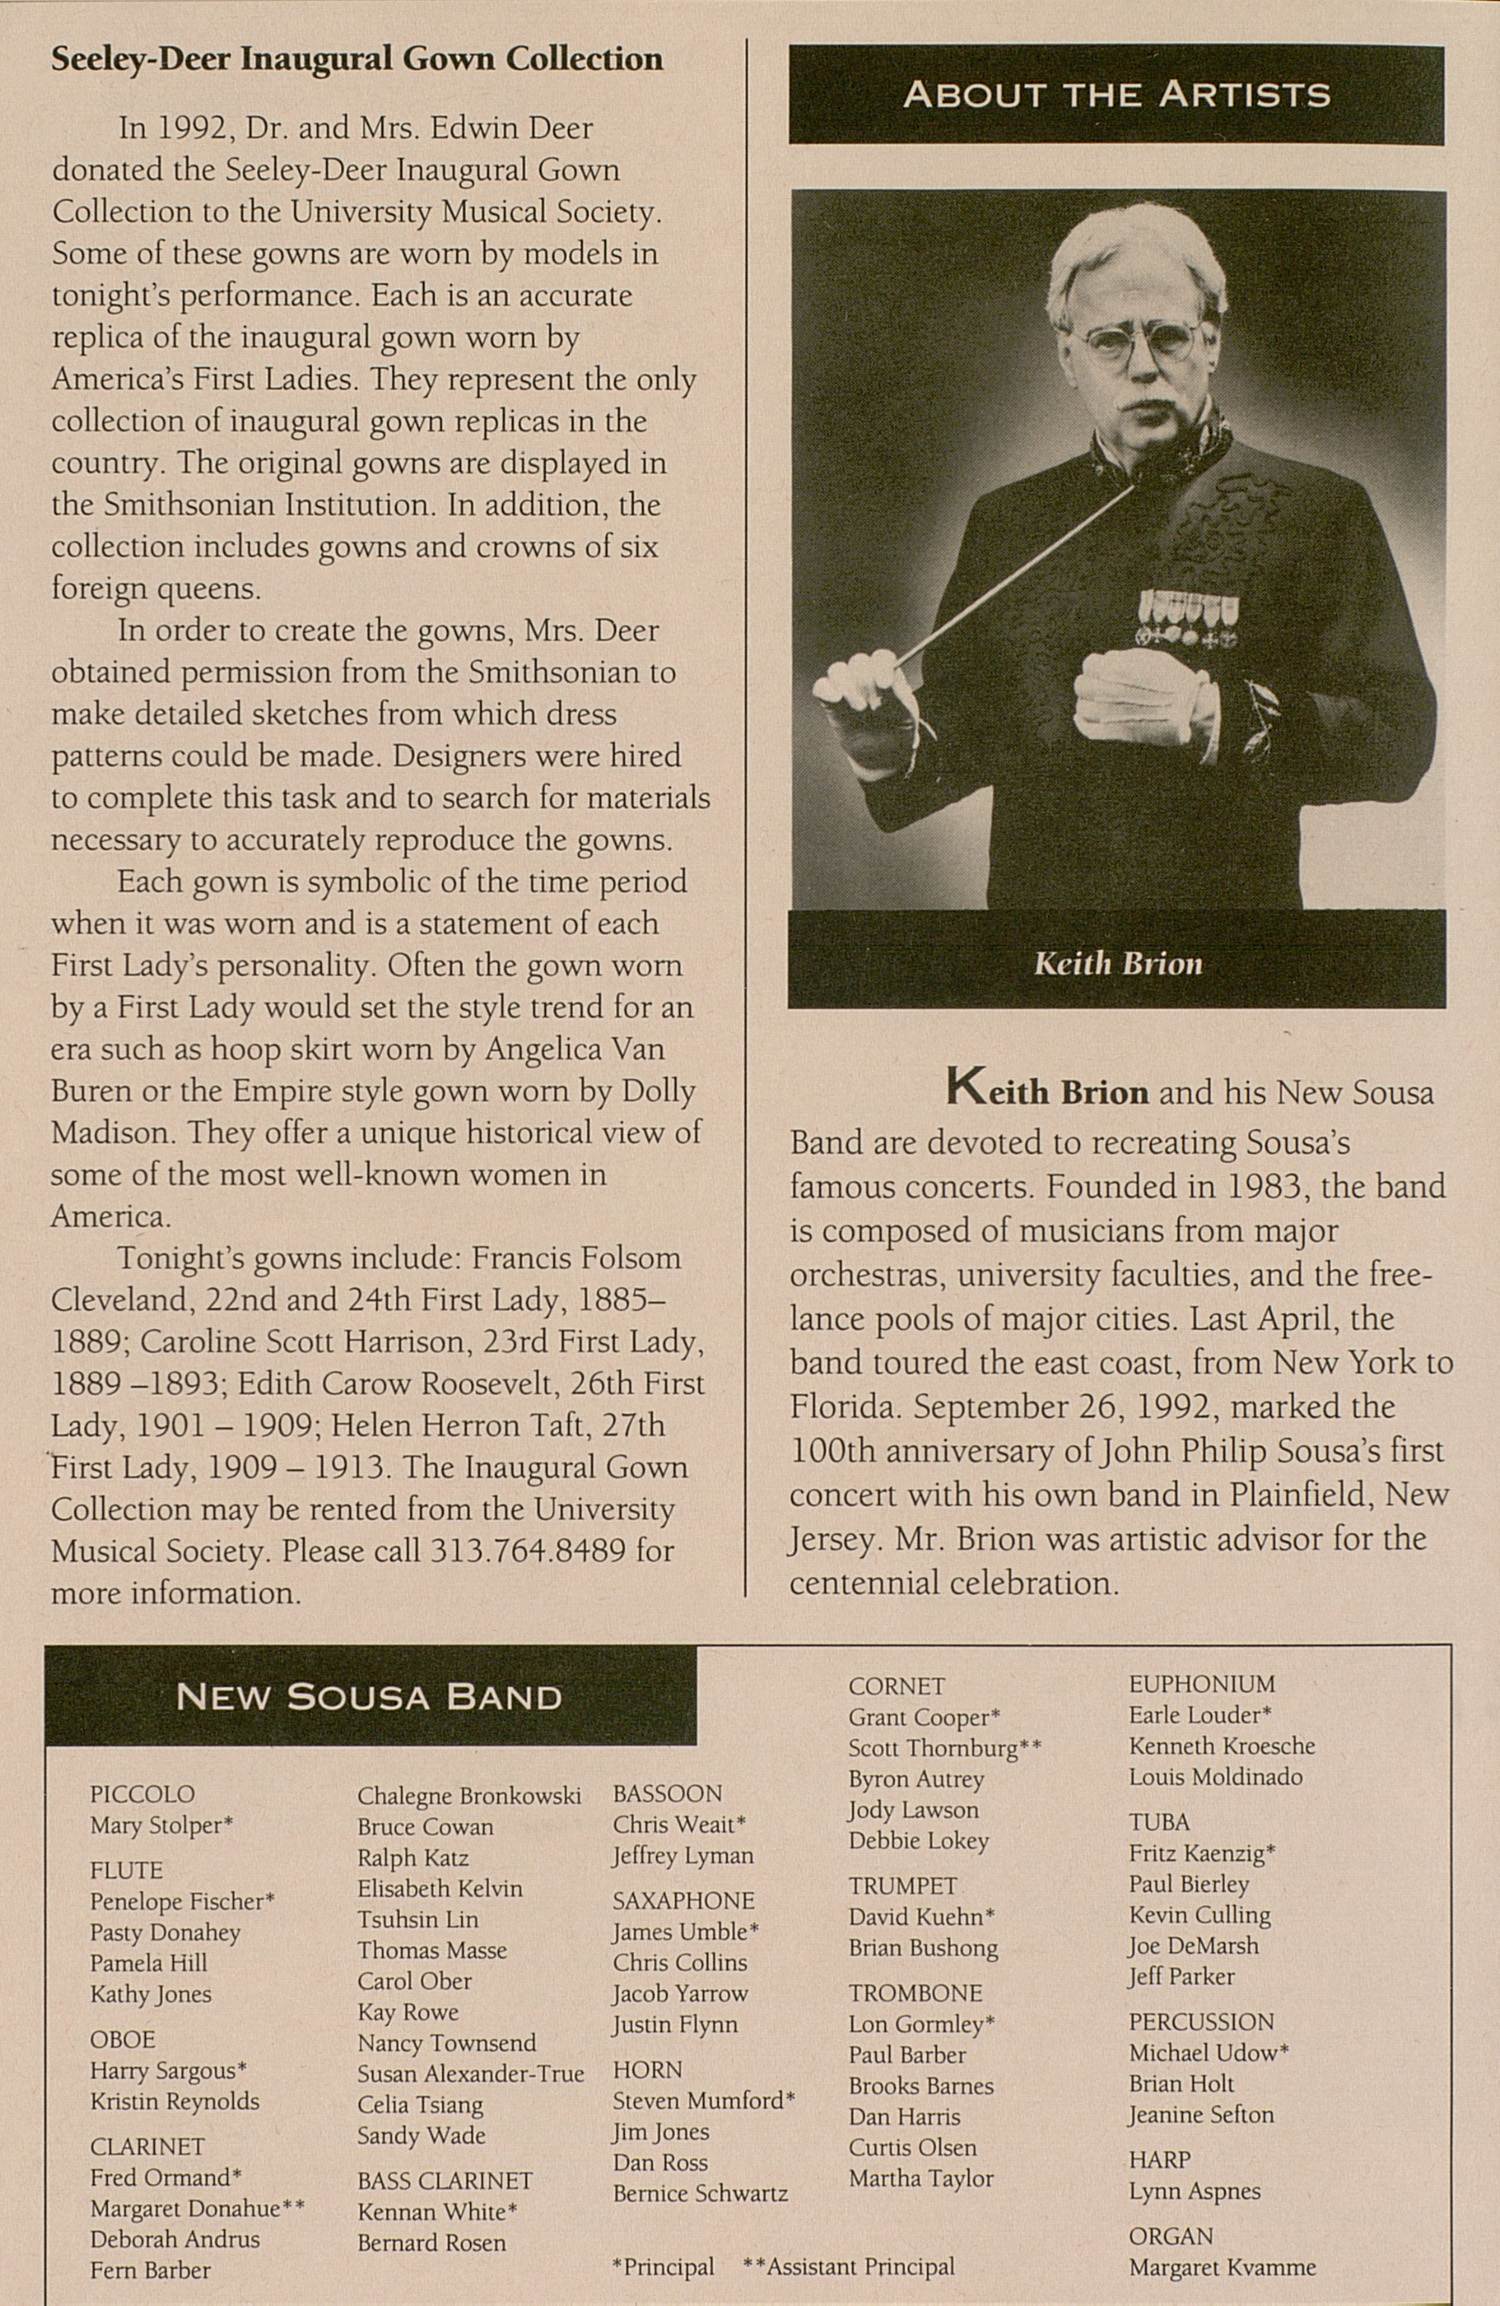 UMS Concert Program, October 10, 1992: Keith Brion And His New Sousa Band --  image